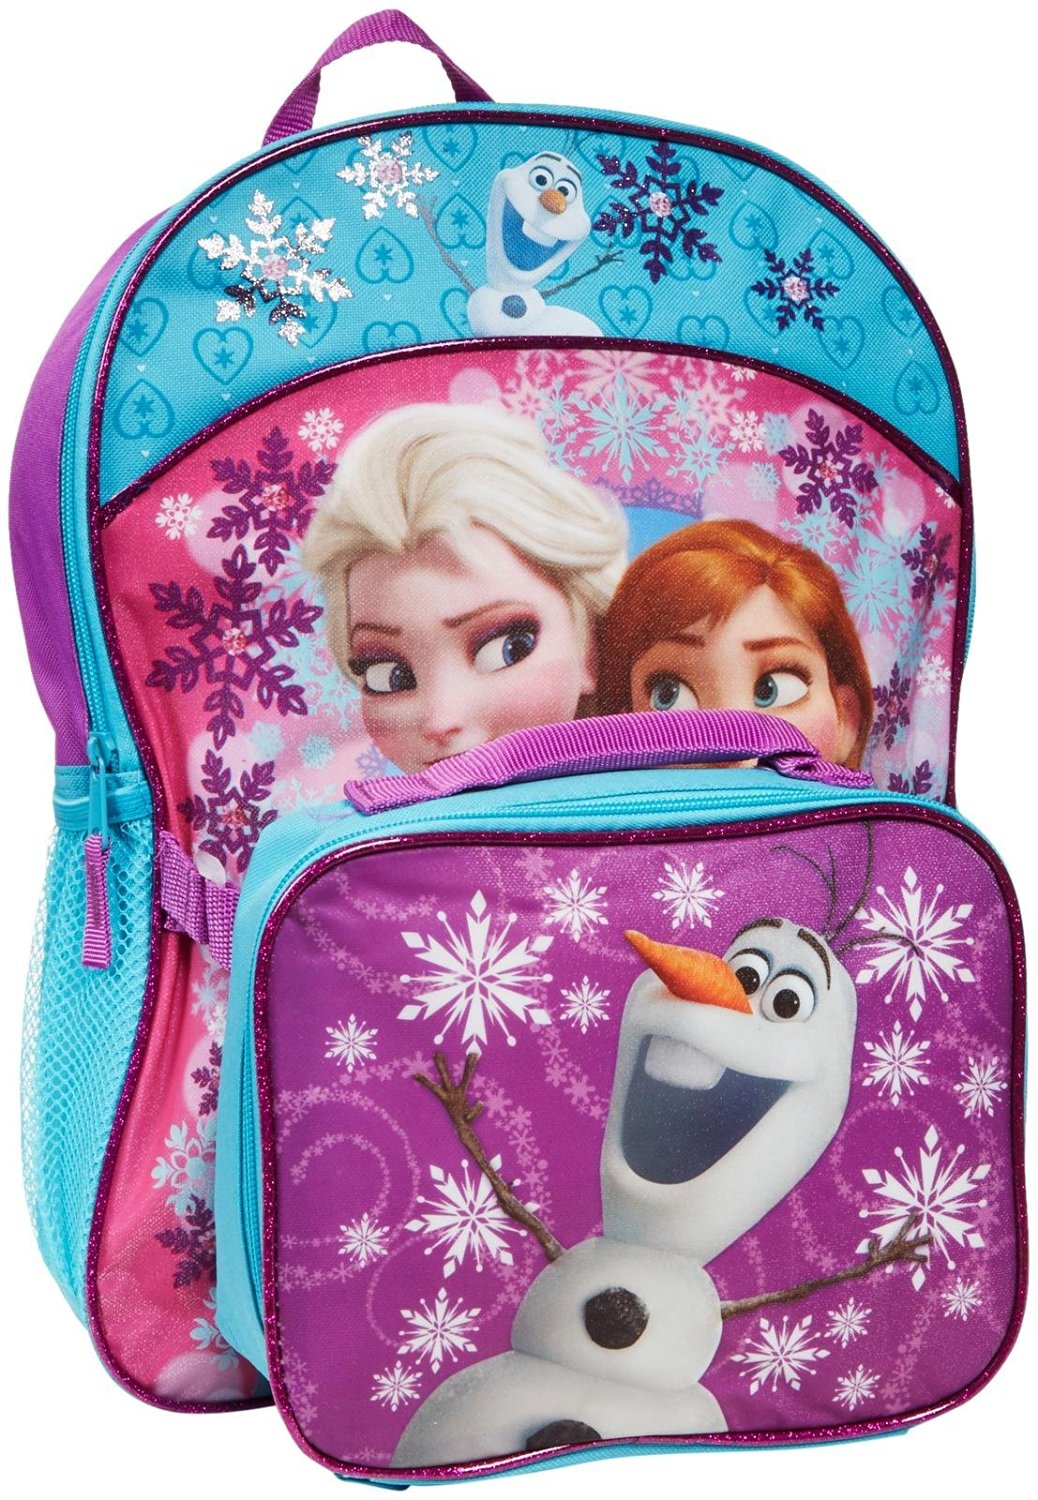 323a5bf2a93 Buy Fast Forward Backpack with Detachable Lunch Box - Cars in Cheap ...